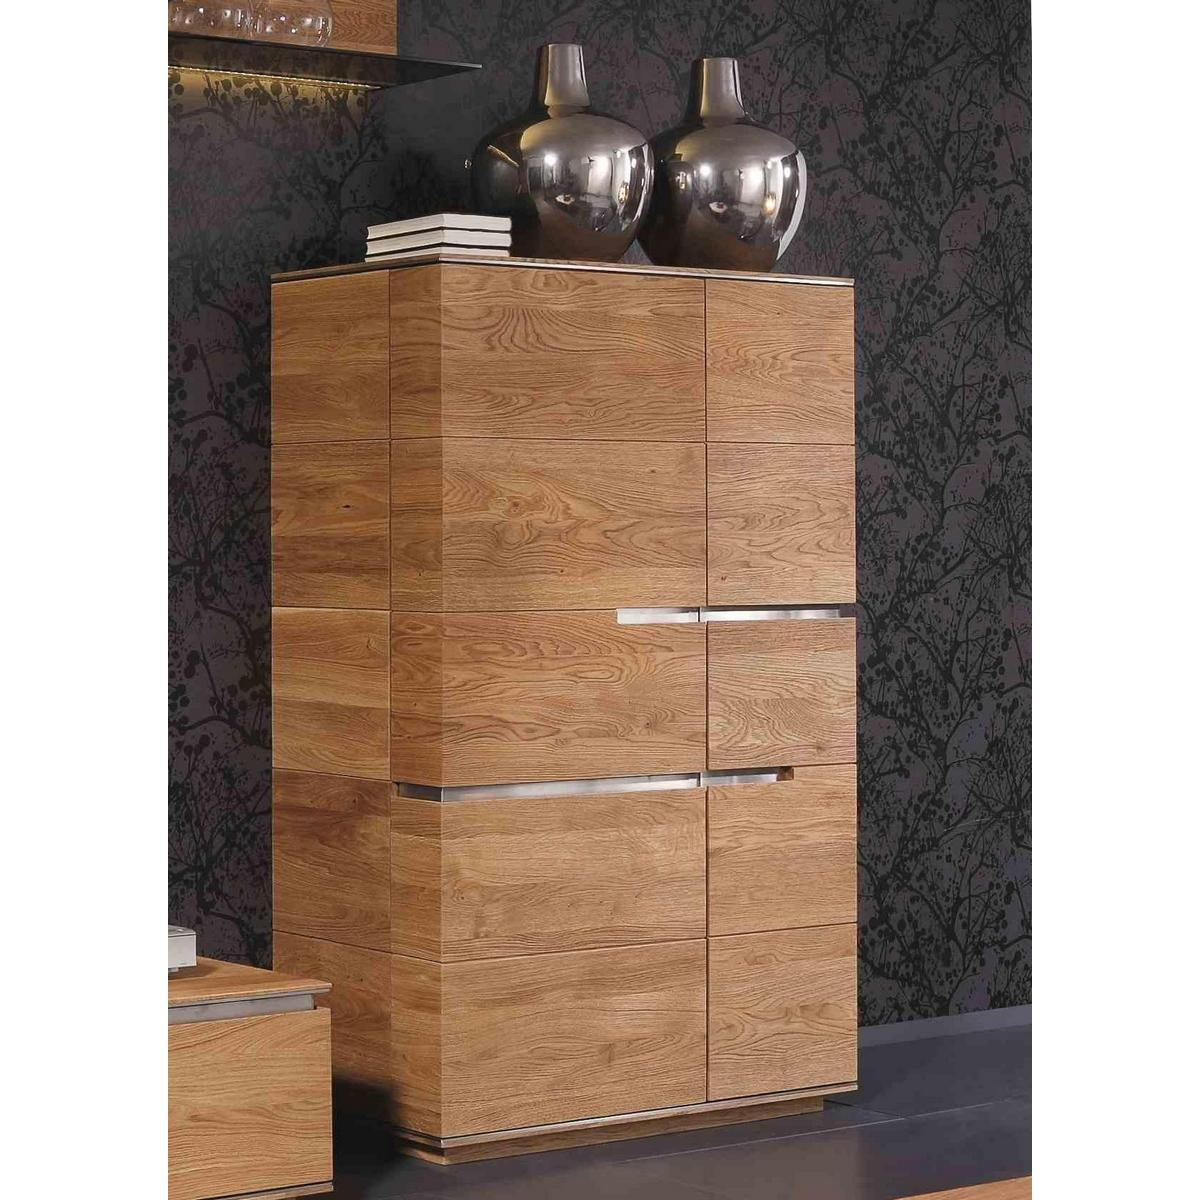 rustikaler schrank amazing rustikaler schrank with rustikaler schrank stunning gro schrank. Black Bedroom Furniture Sets. Home Design Ideas